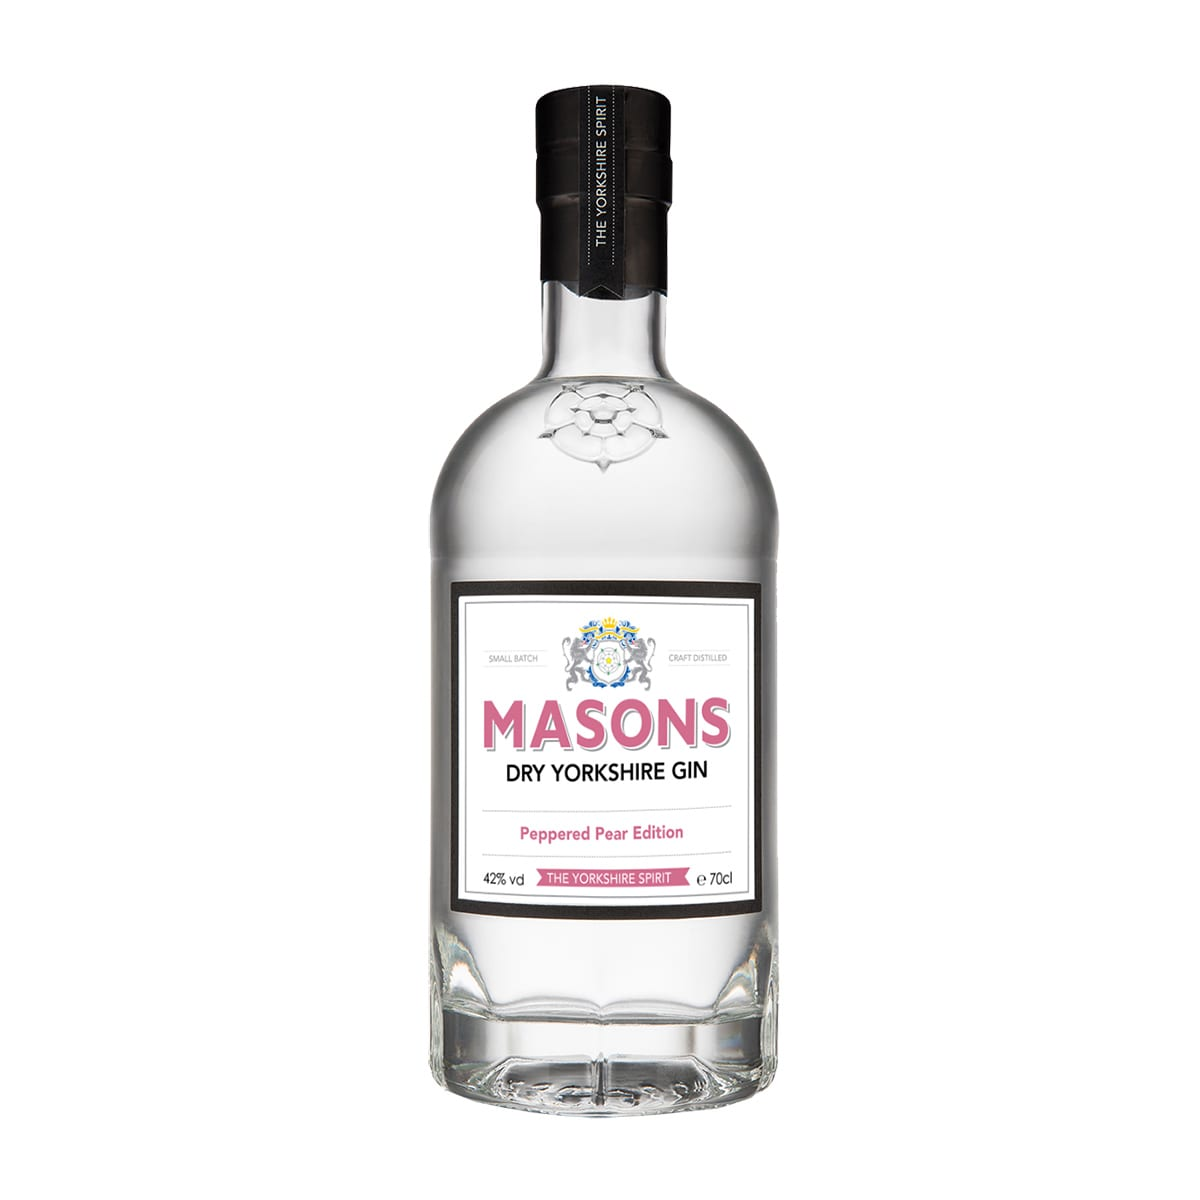 Masons Peppered Pear Dry Yorkshire Gin